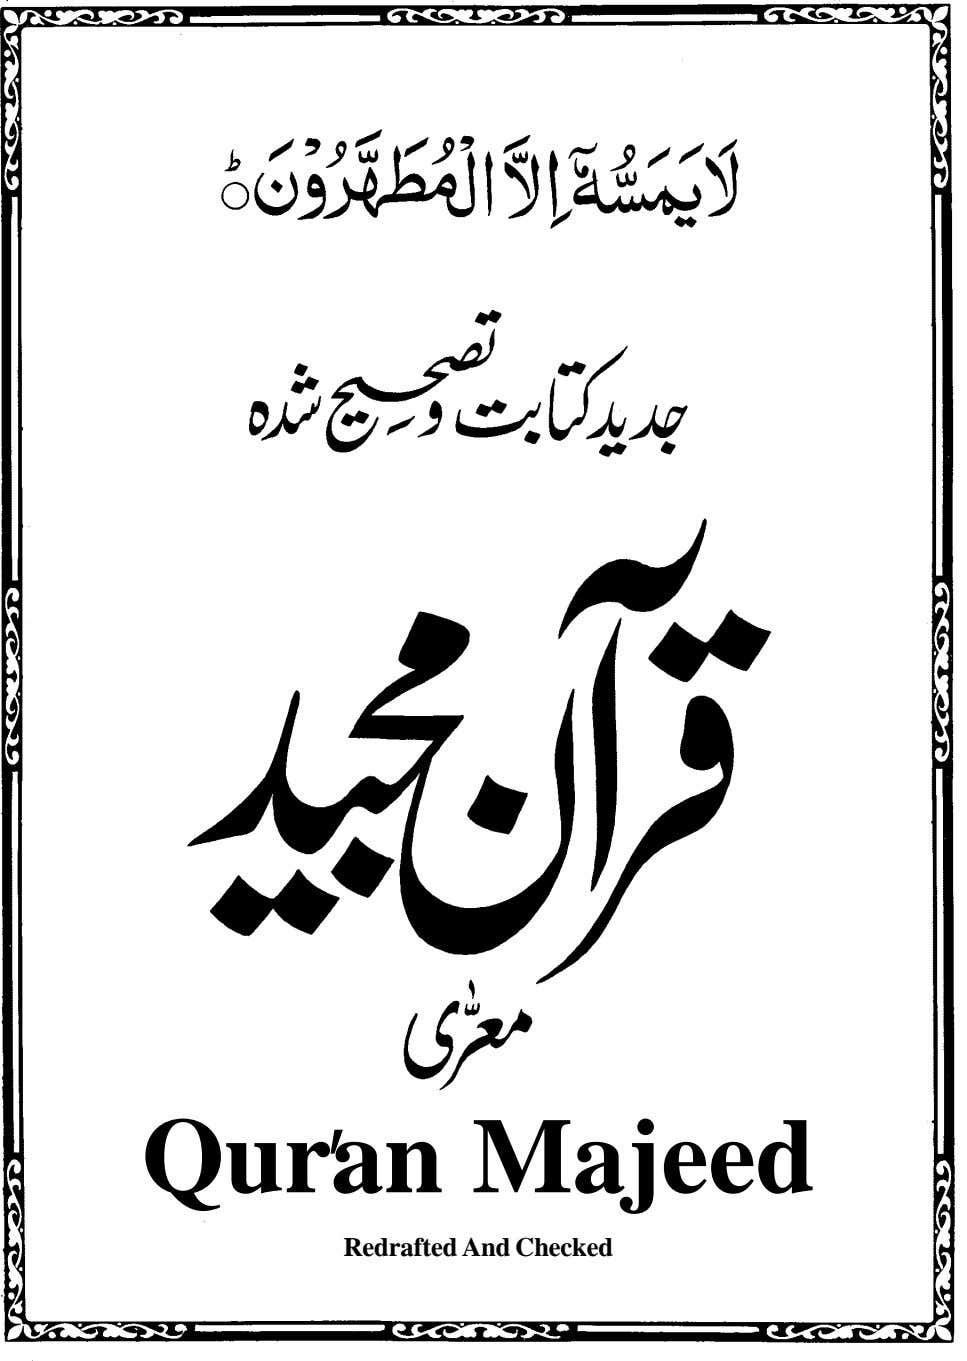 Quran Majeed ' Redrafted And Checked